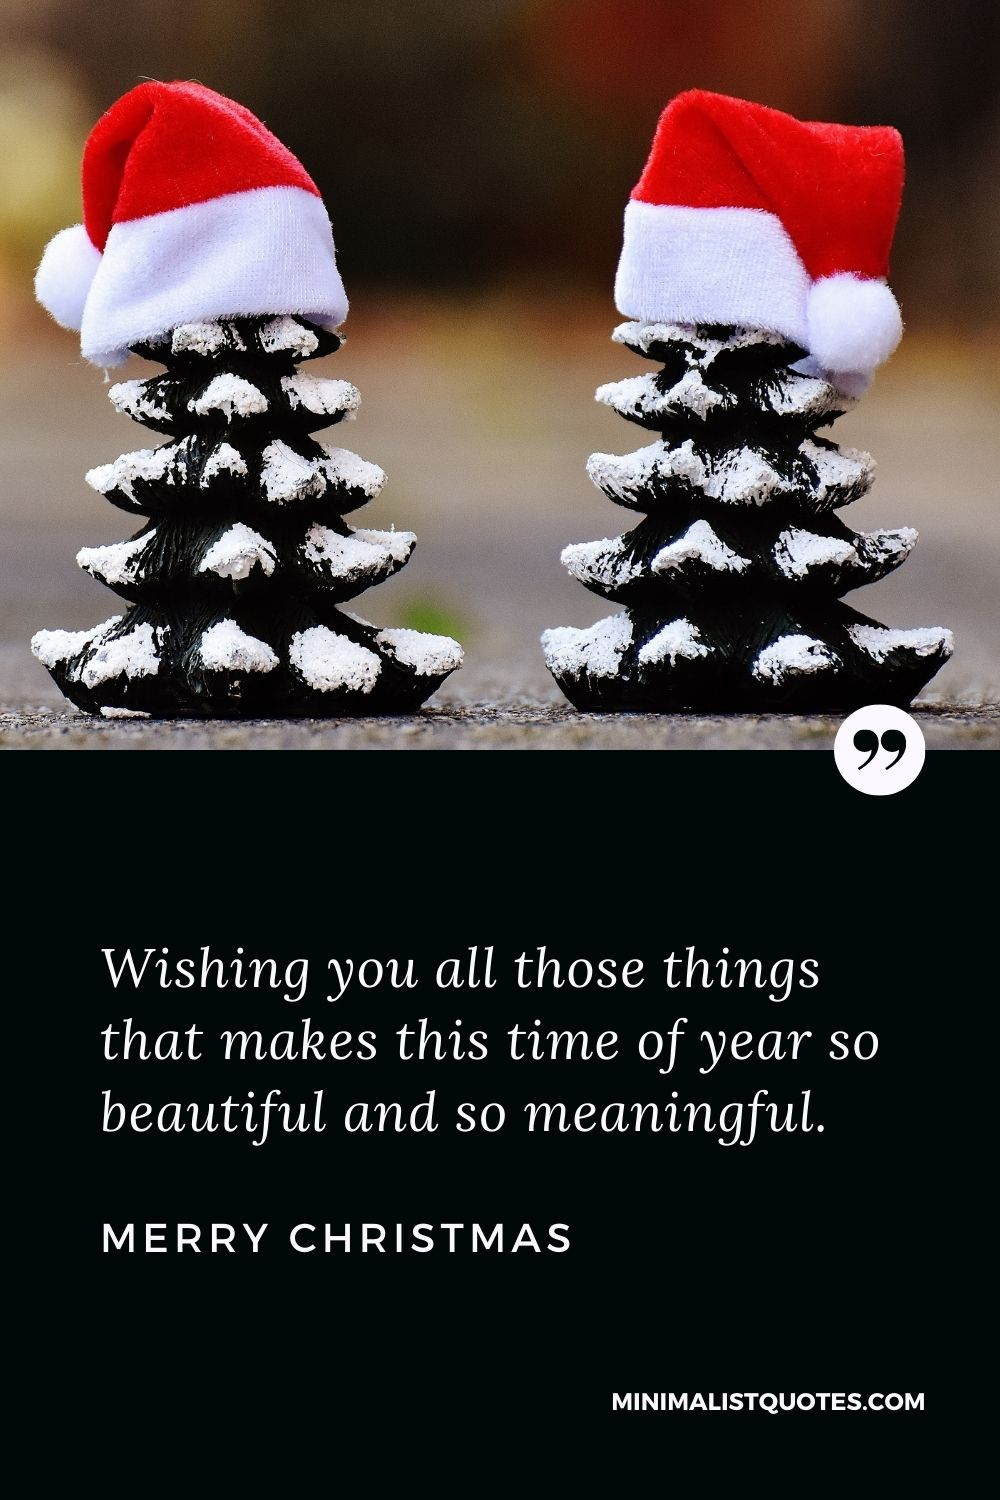 Merry Christmas Wishes - Wishing you all those things that makes this time of year so beautiful and so meaningful.